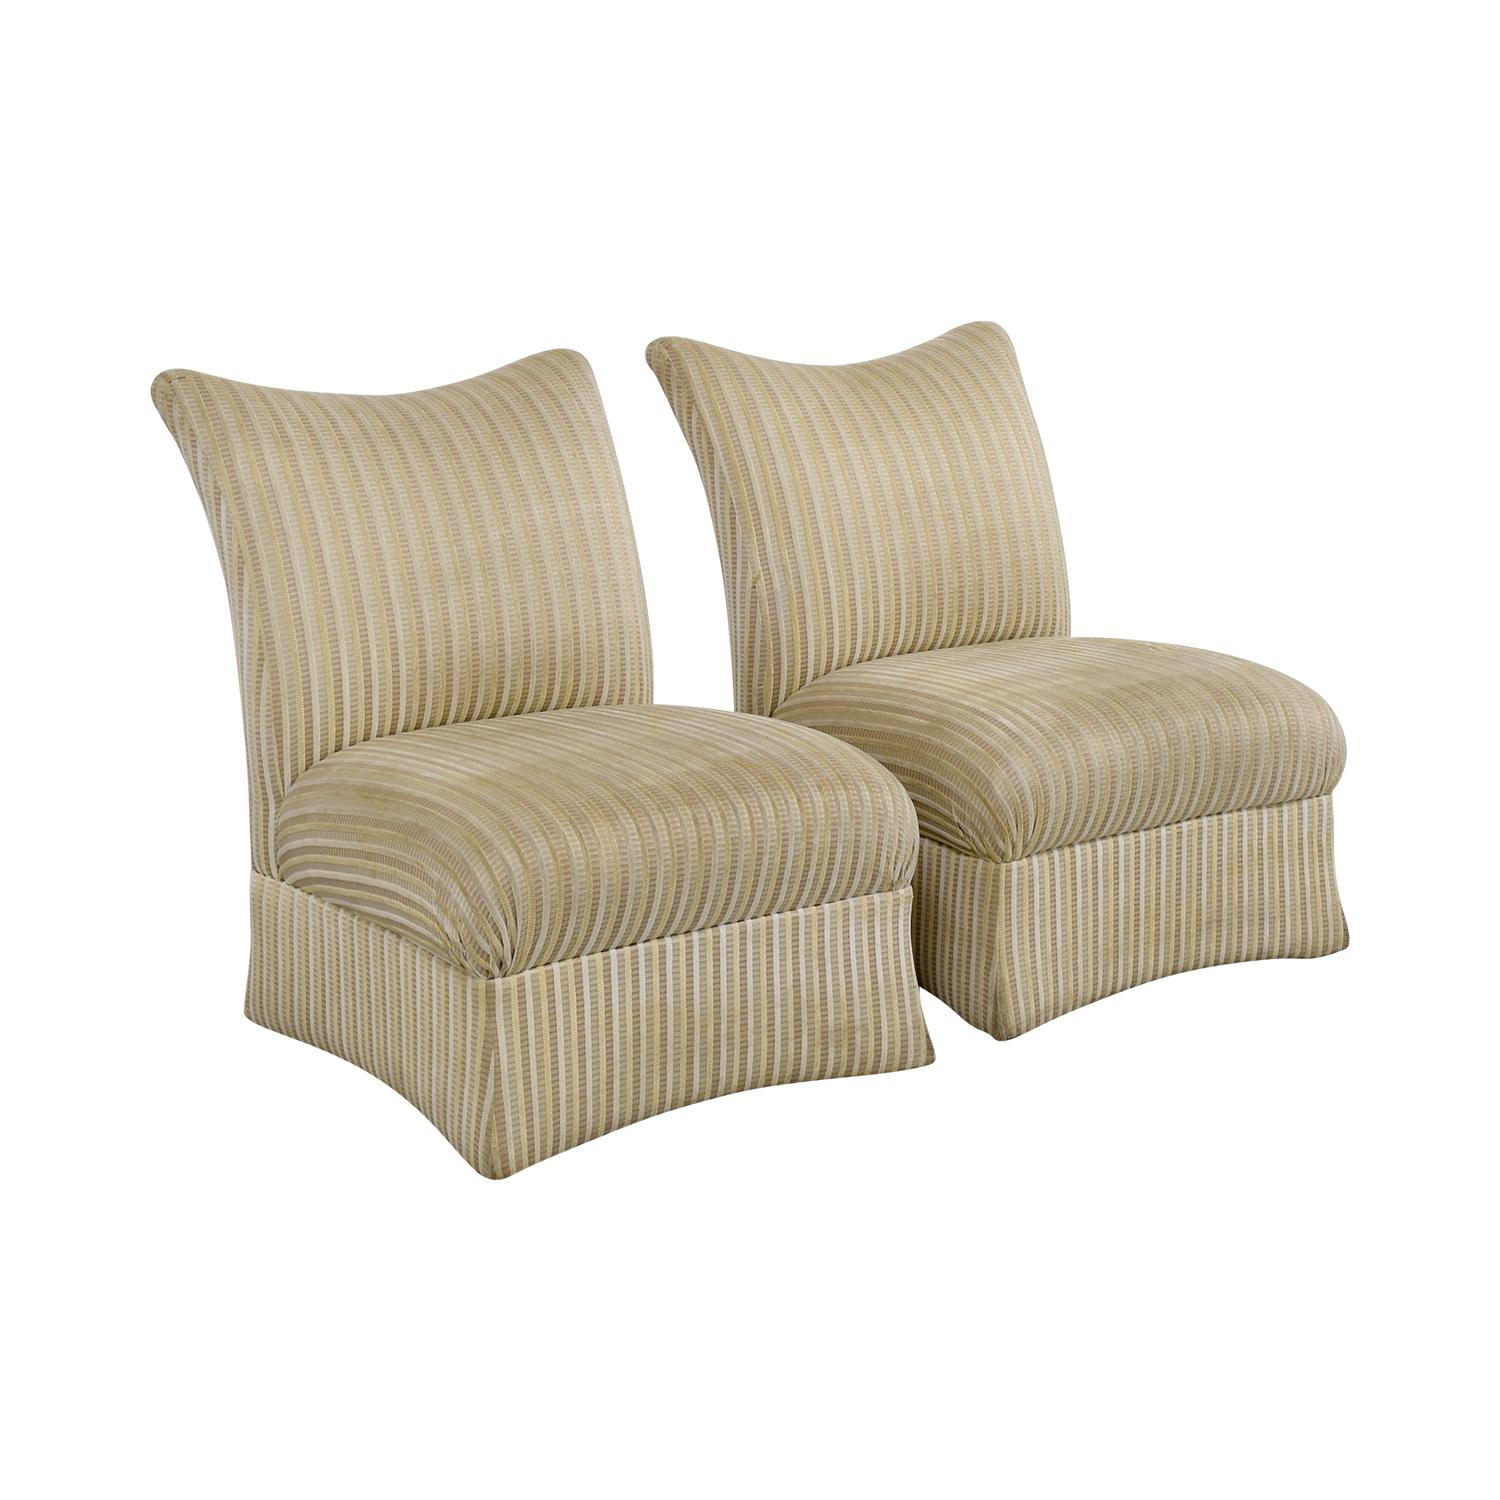 Ethan Allen Ethan Allen Striped Accent Chairs